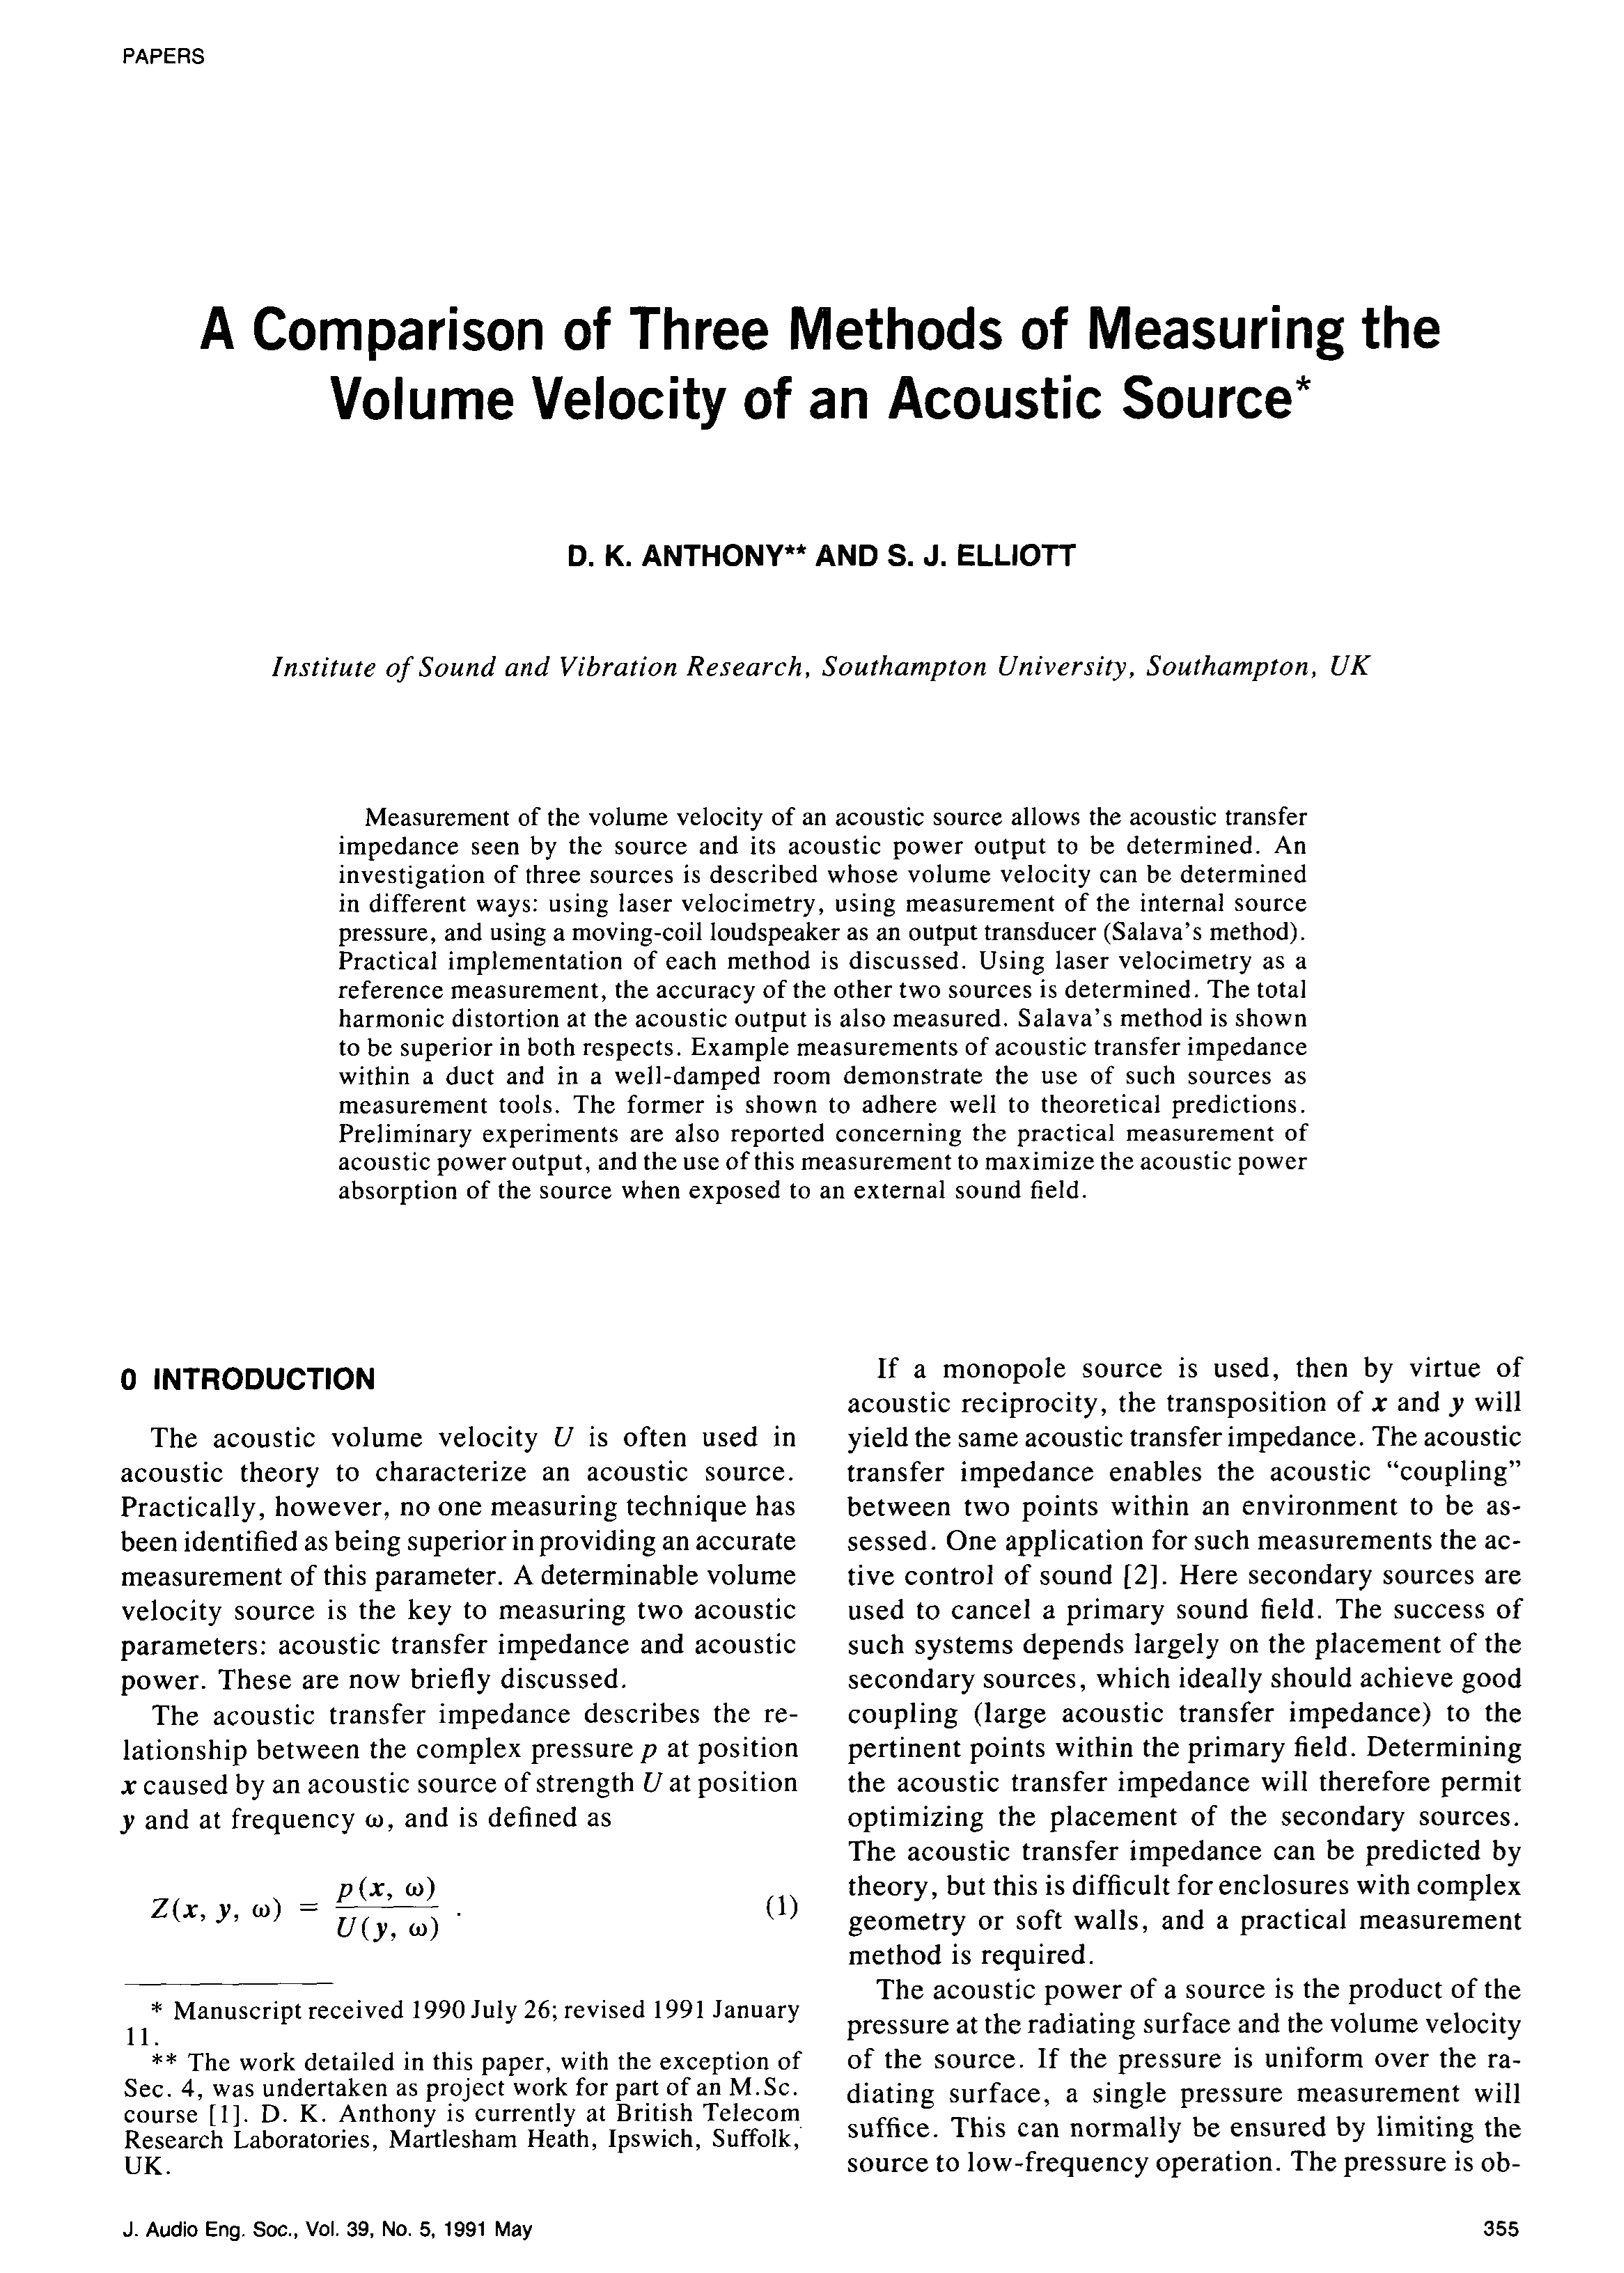 Aes E Library A Comparison Of Three Methods Measuring The Ccvs Current Controlled Voltage Source In Practice Electrical Volume Velocity An Acoustic